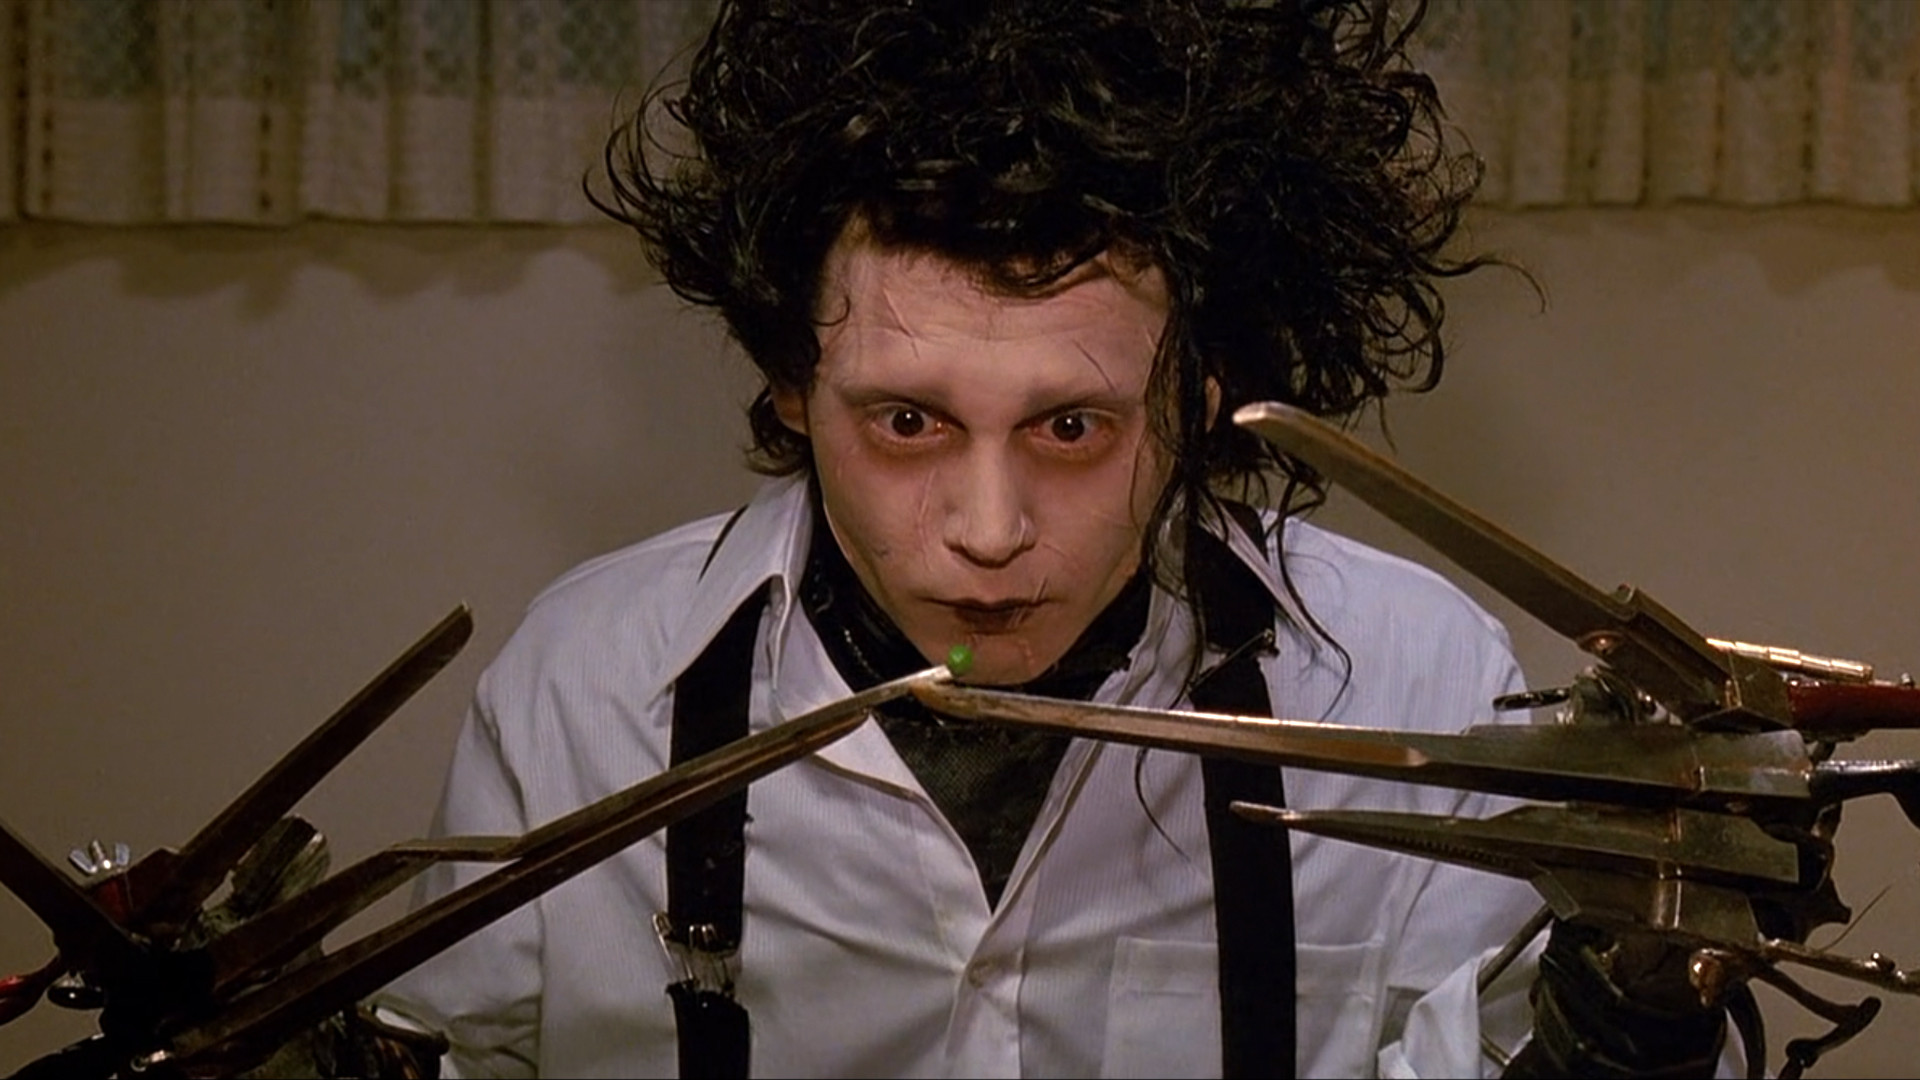 25 reasons why 'Edward Scissorhands' is the most magical Johnny Depp film